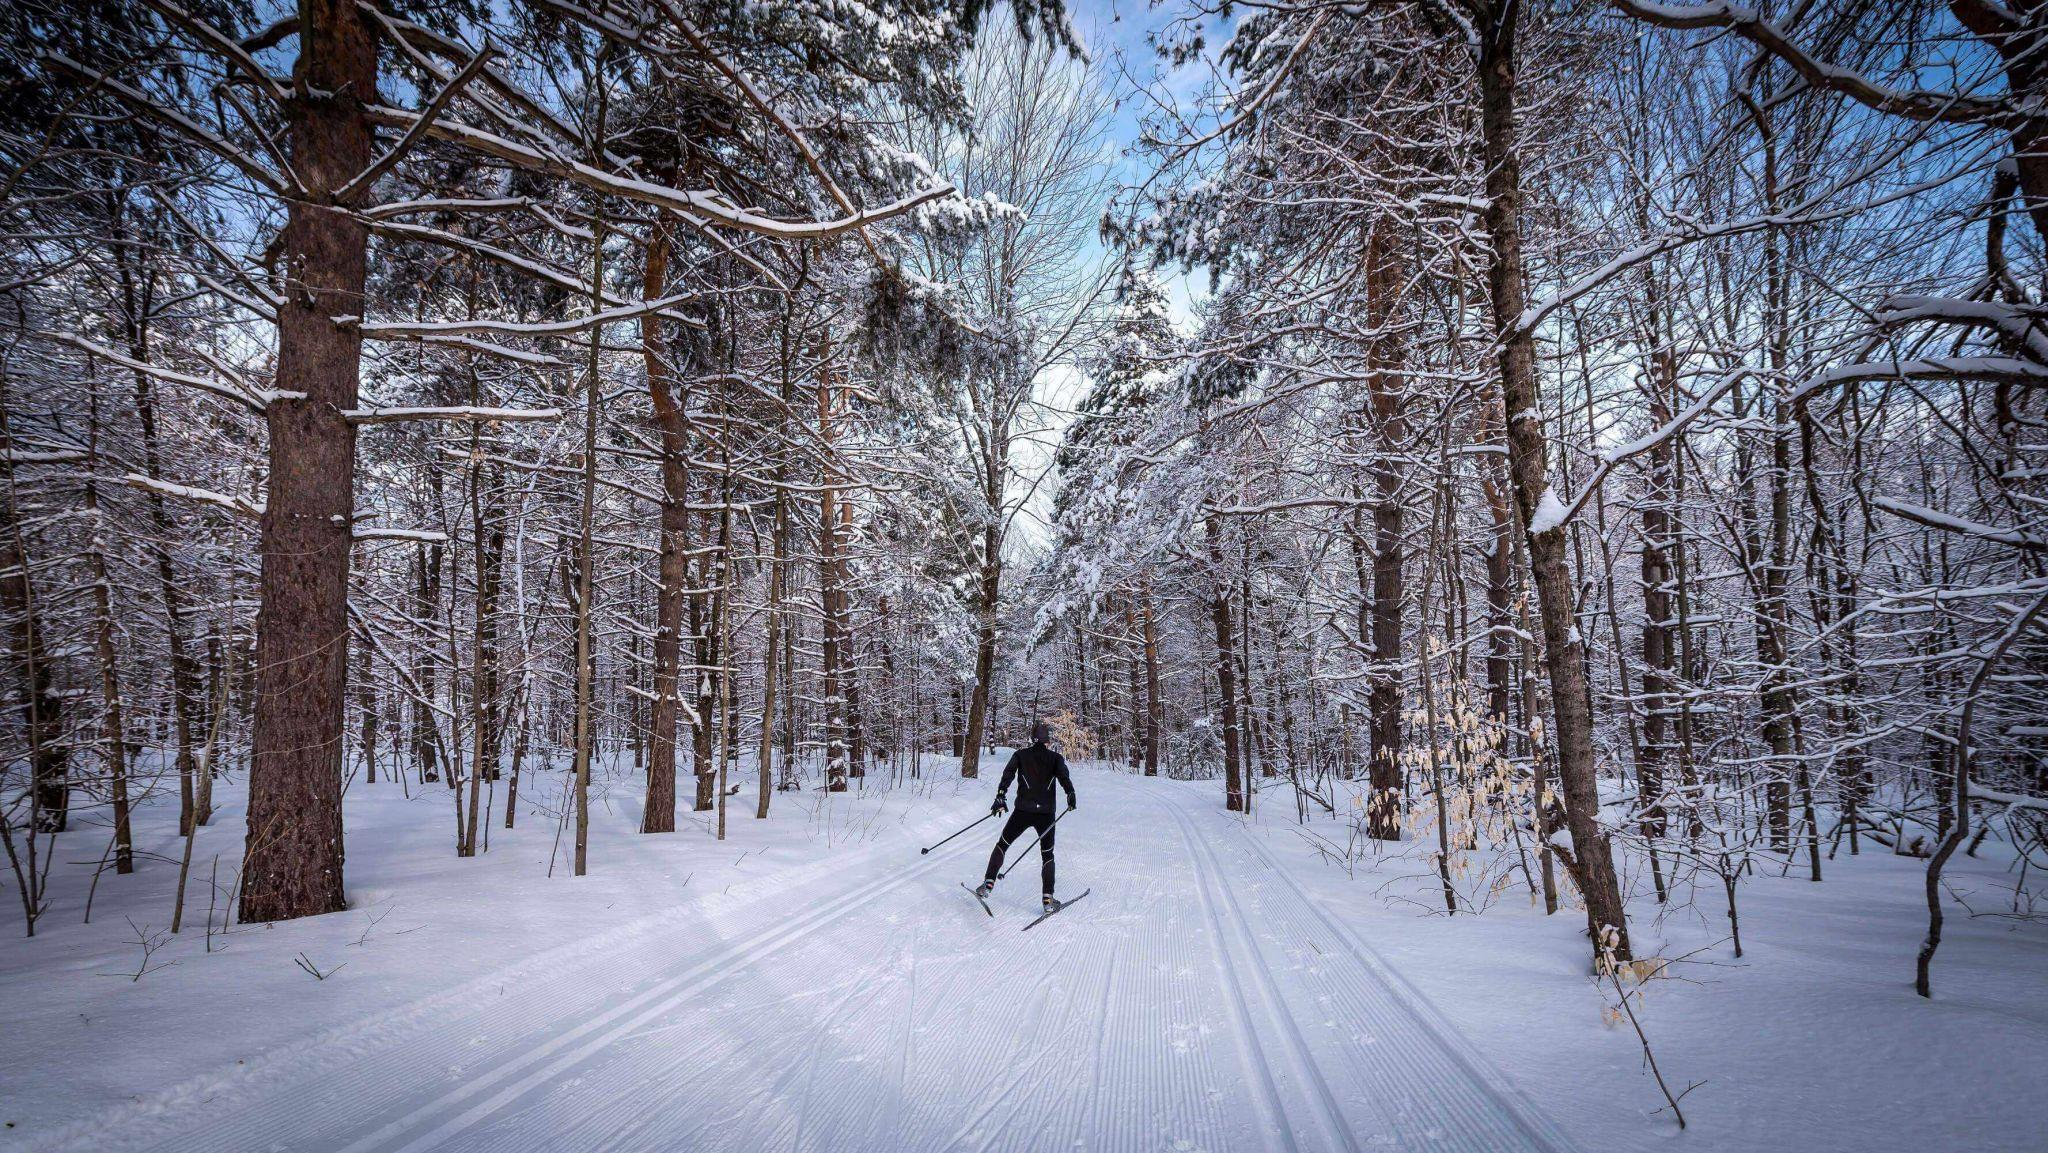 It never ceases to amaze me every time I get to enjoy my favourite winter  activities in Gatineau Park. Although I do have a bit of a competitive  streak fdf501fda